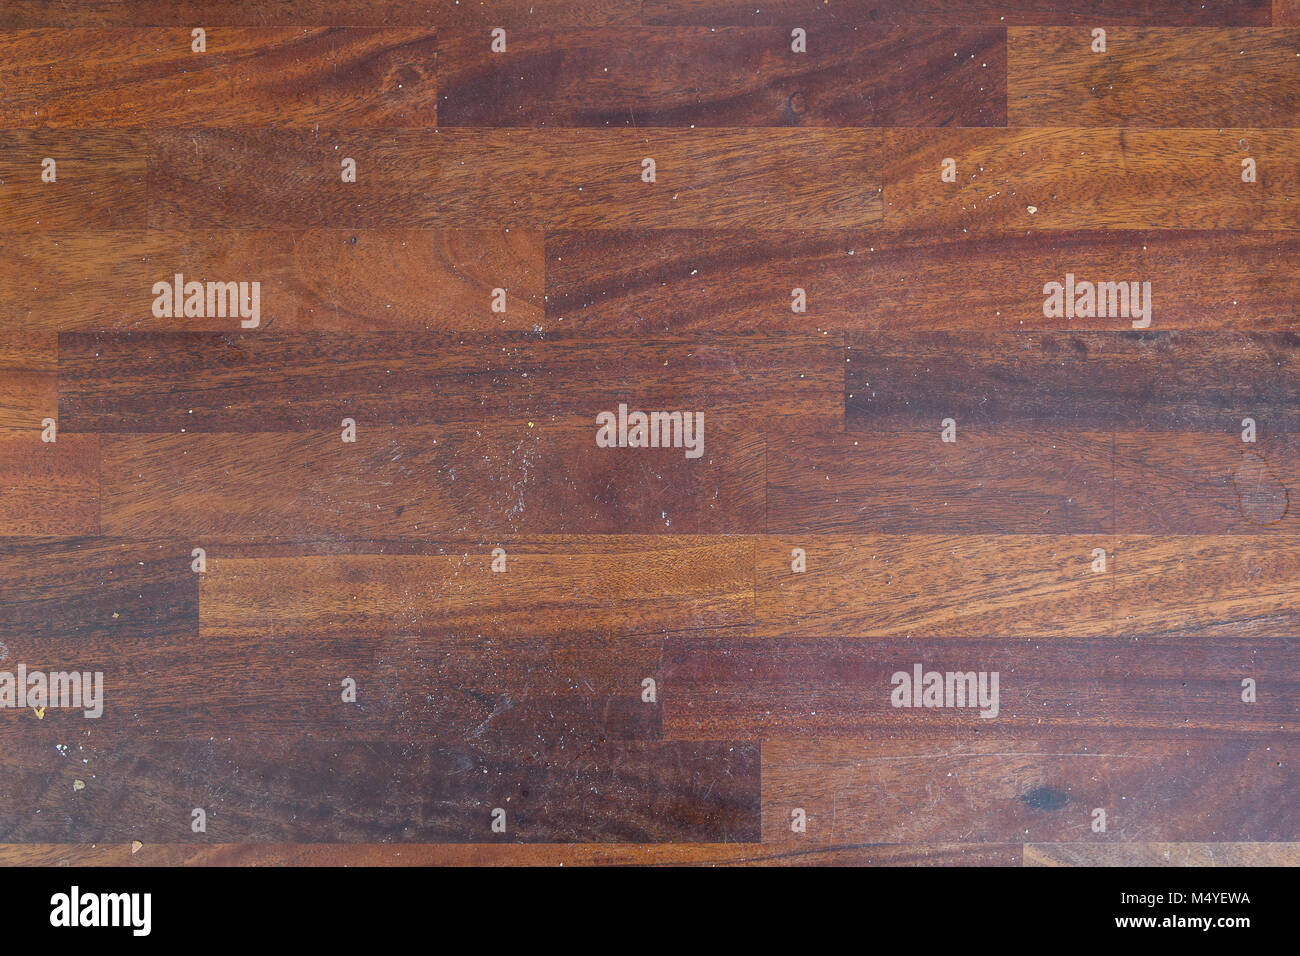 Dirty wooden kitchen counter with stains and bread crumps viewed from above. - Stock Image